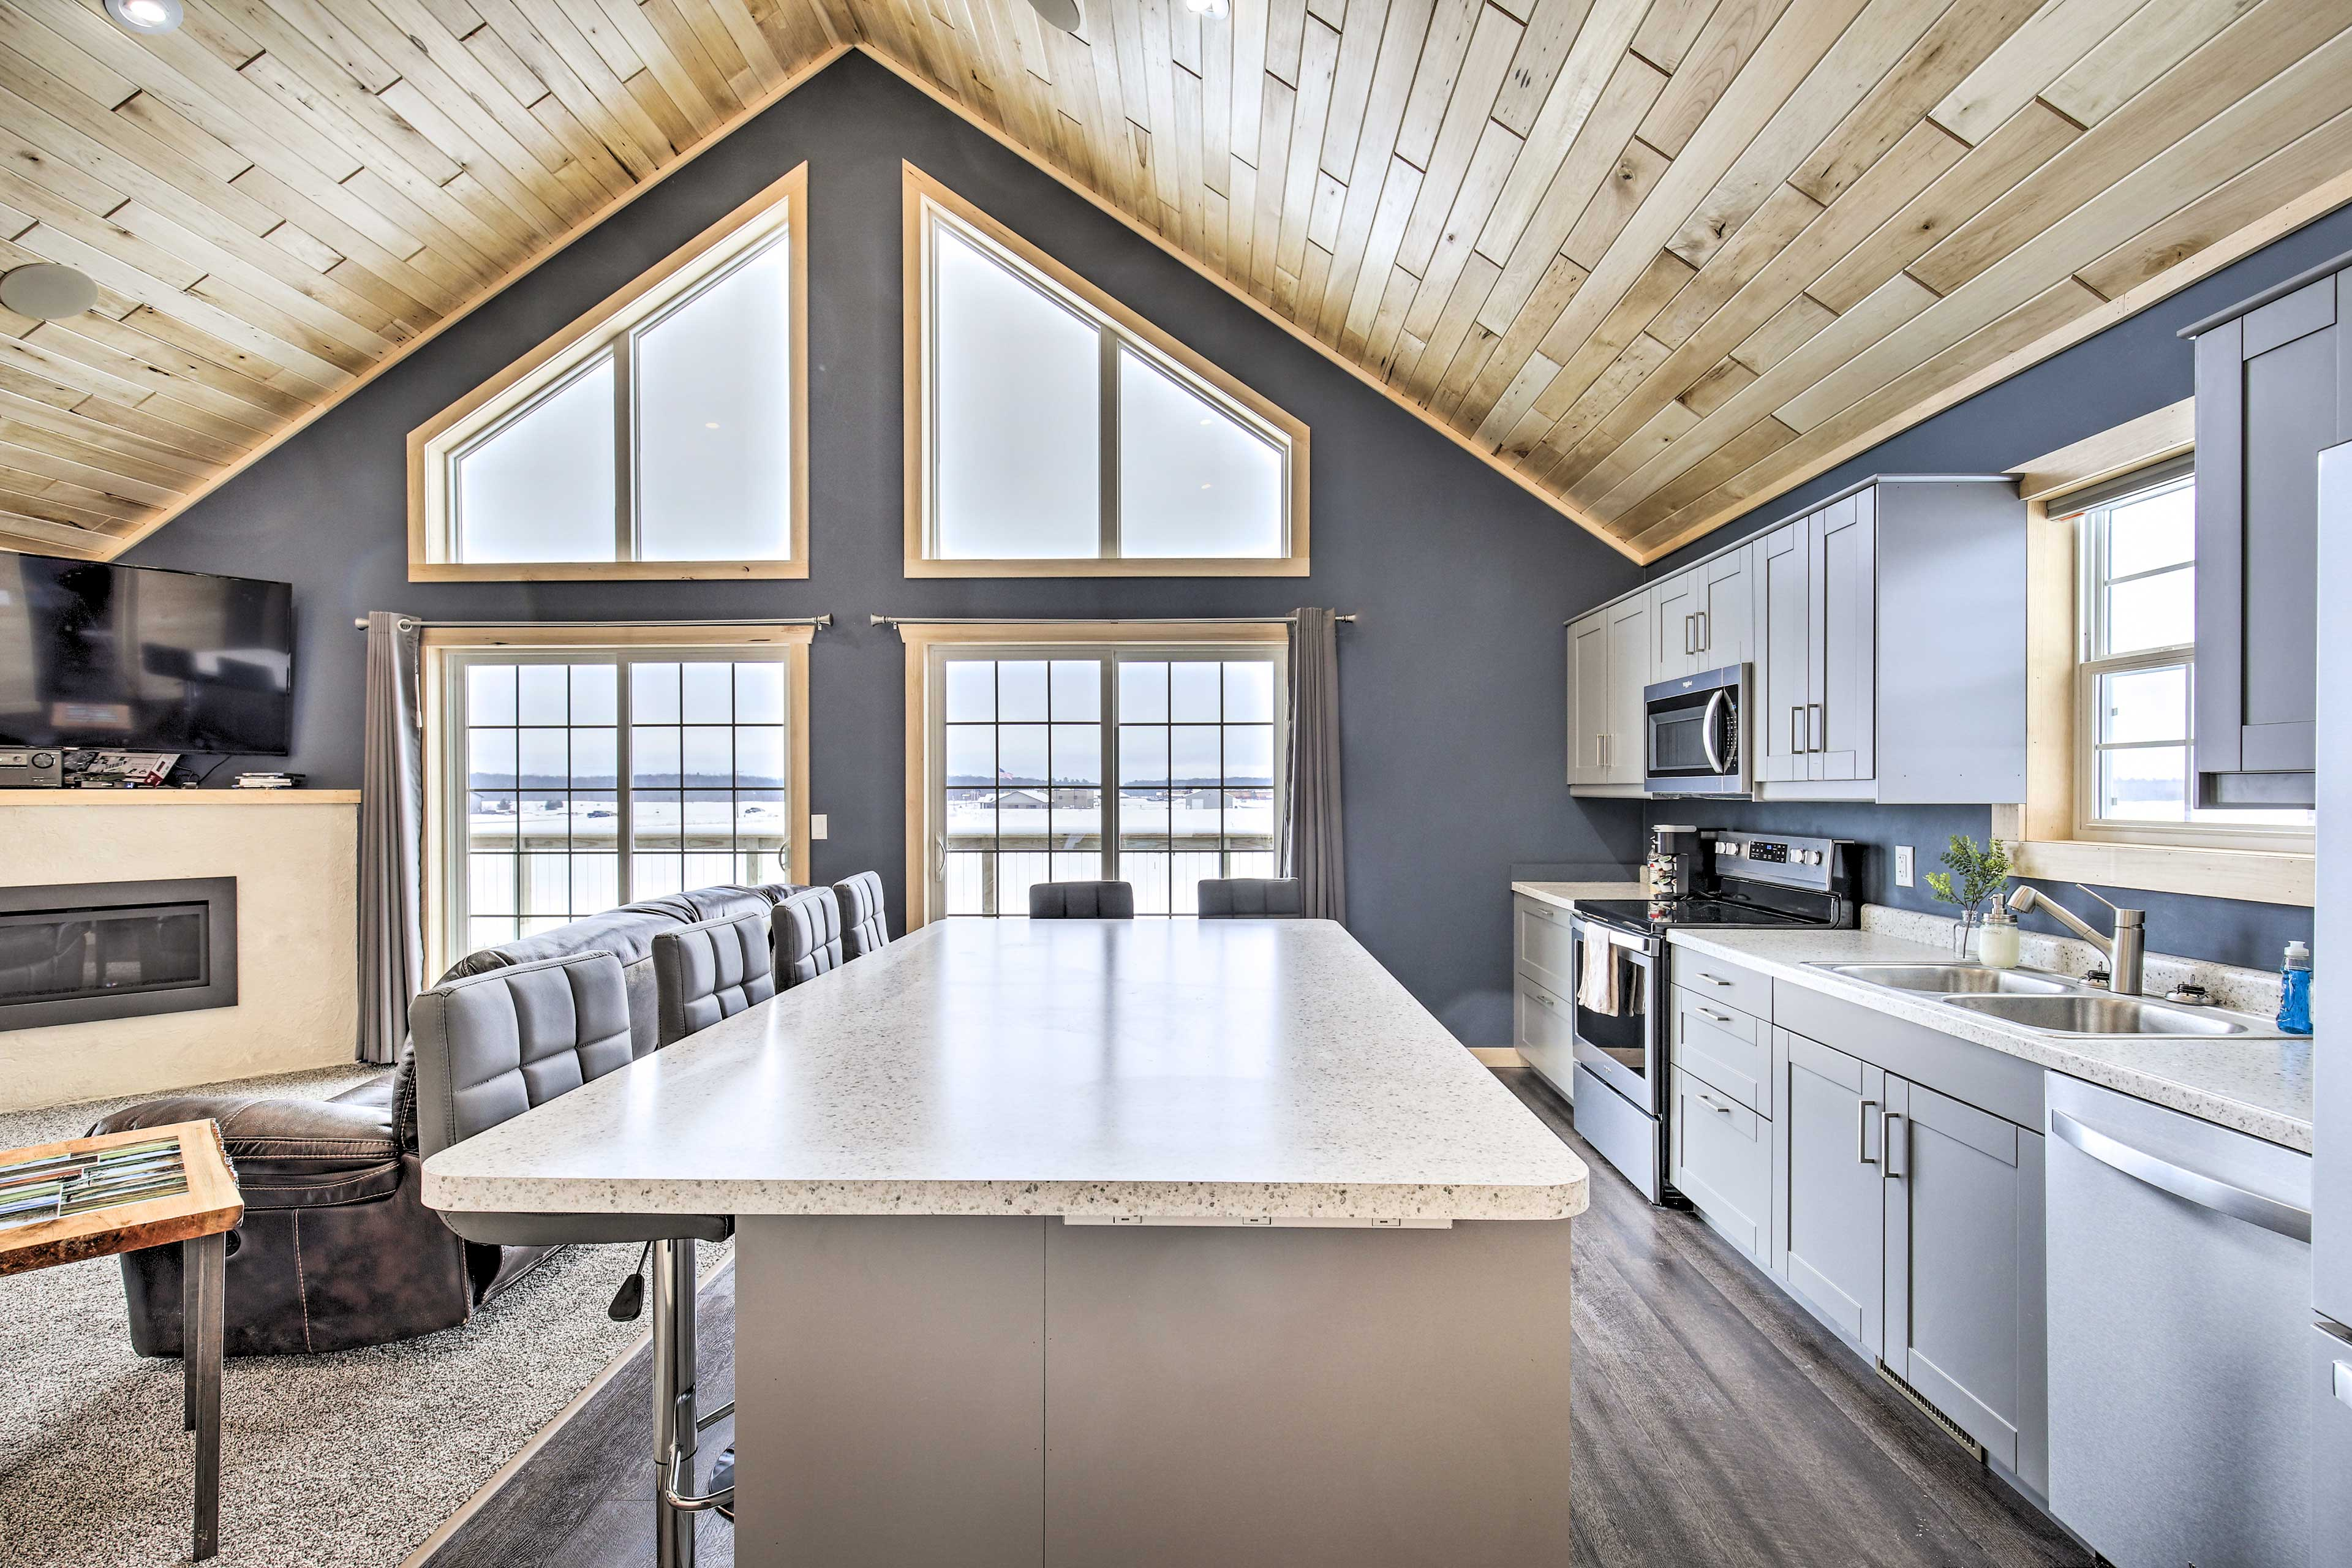 Enjoy a classic Wisconsin retreat at this vacation rental house!